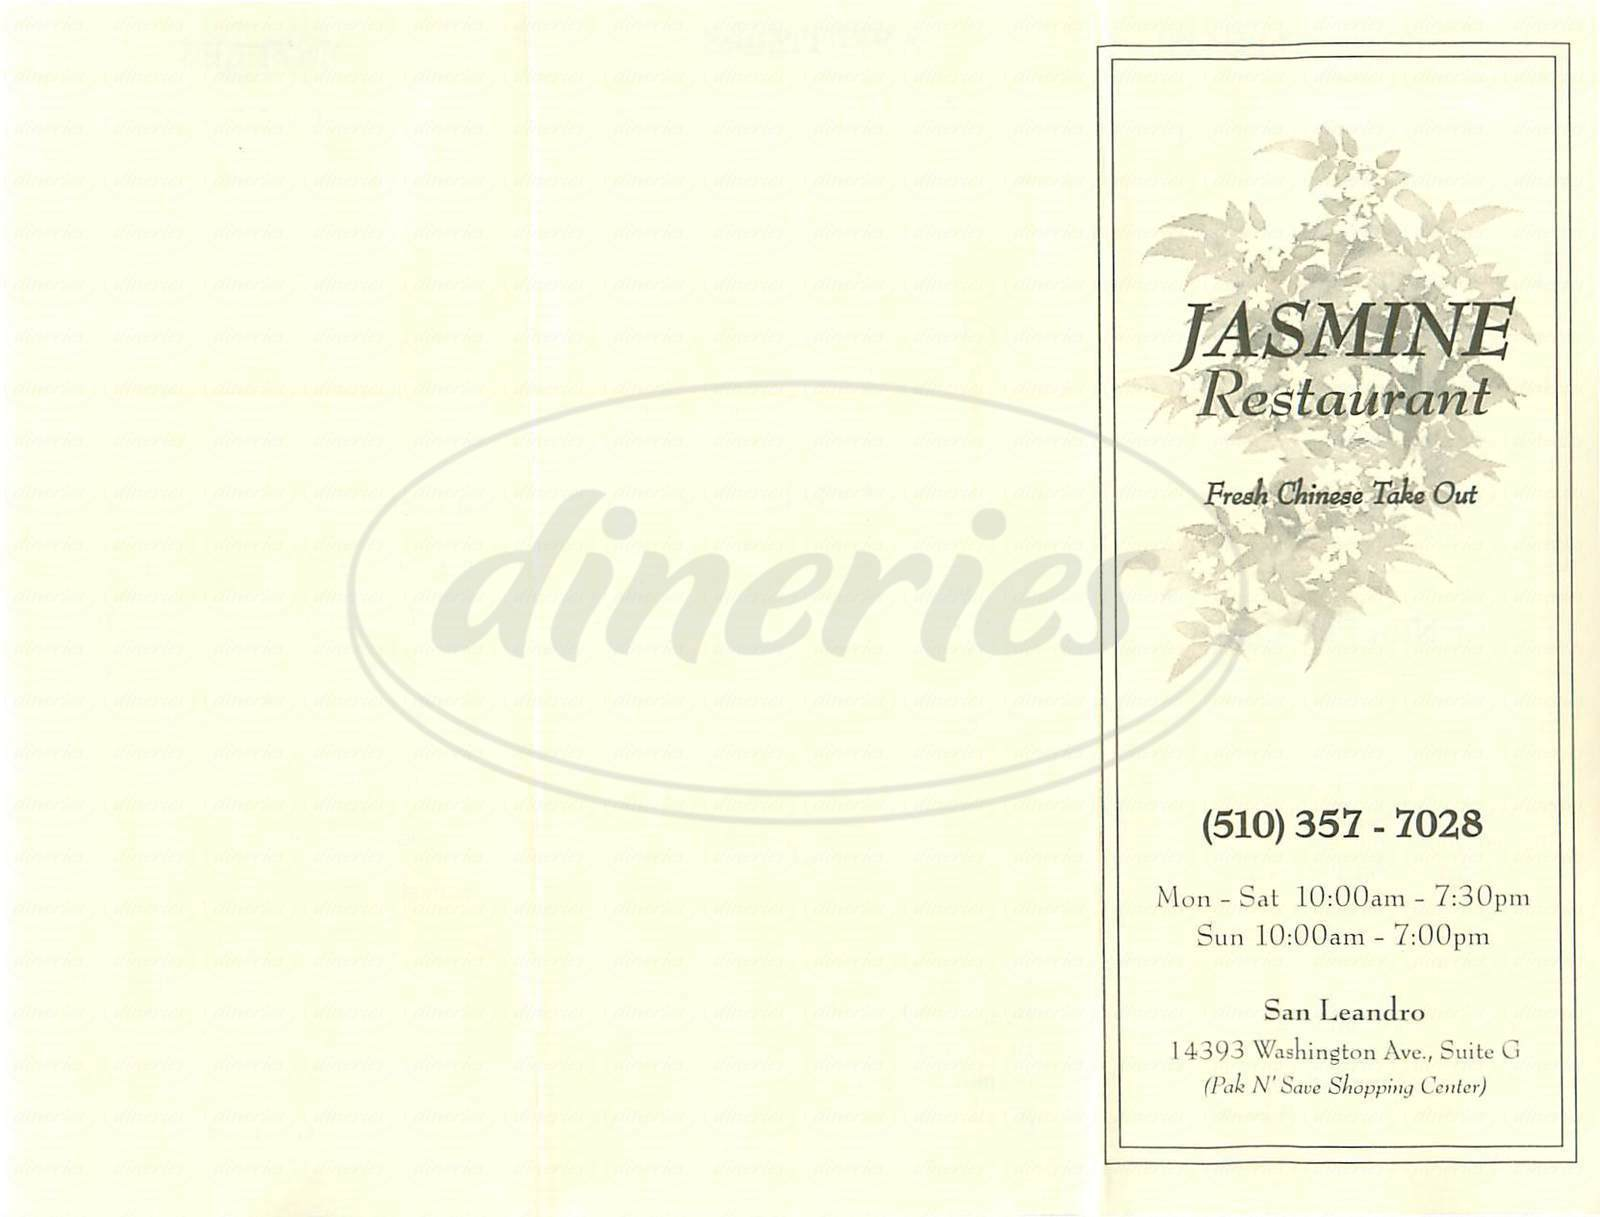 menu for Jasmine Restaurant